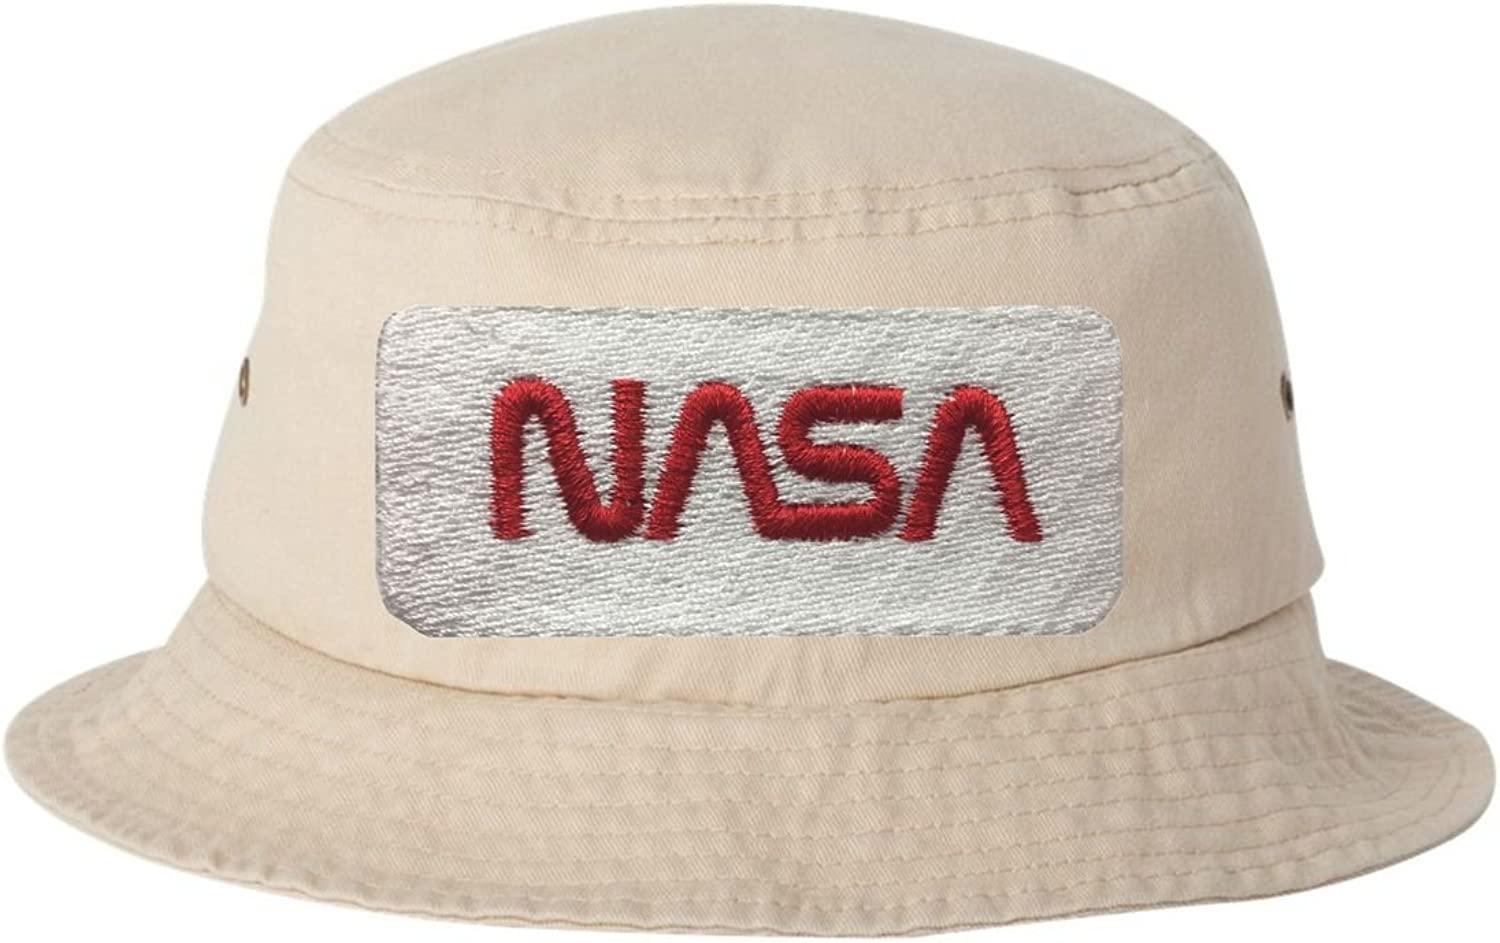 Go All Out Adult NASA Patch Embroidered Bucket Cap Dad Hat